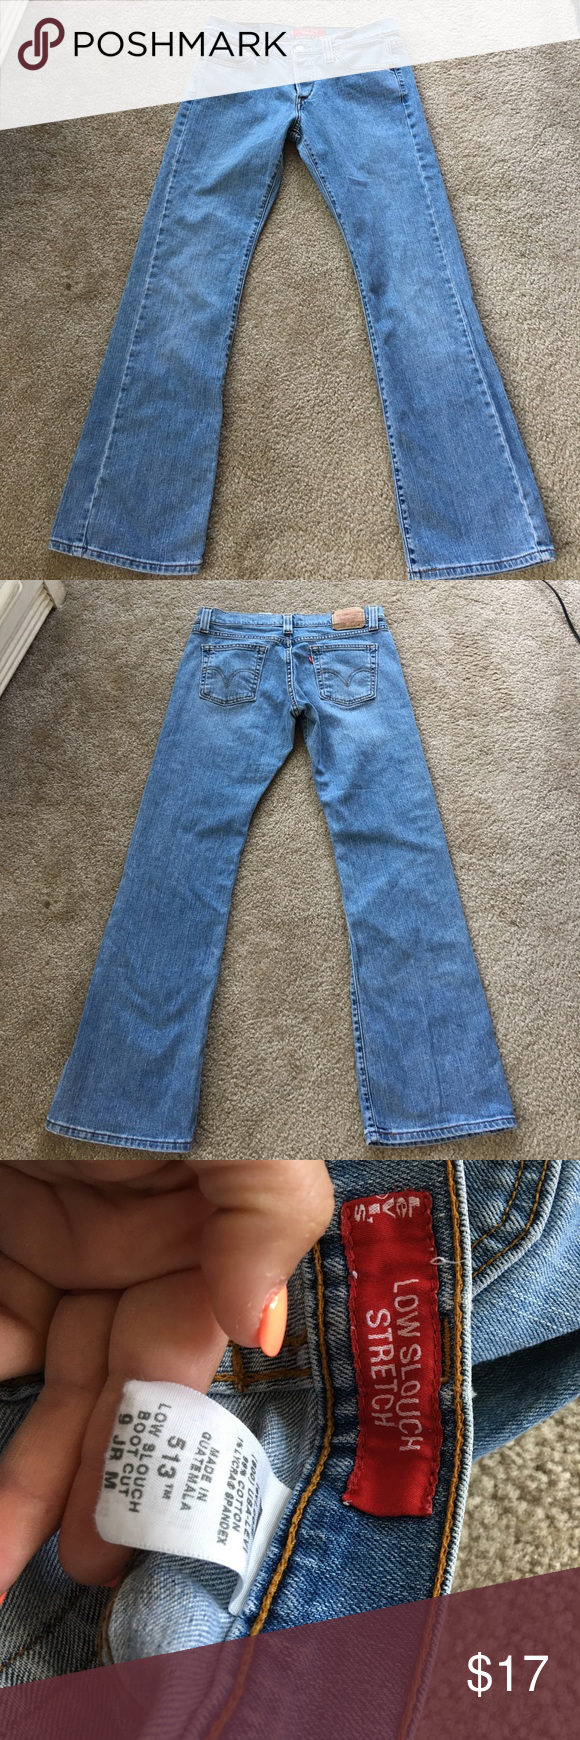 bf35133075b Levi's 513 Low Slouch Stretch Bootcut Jeans Button fly. Junior 9 Medium  Length Levi's Jeans Boyfriend